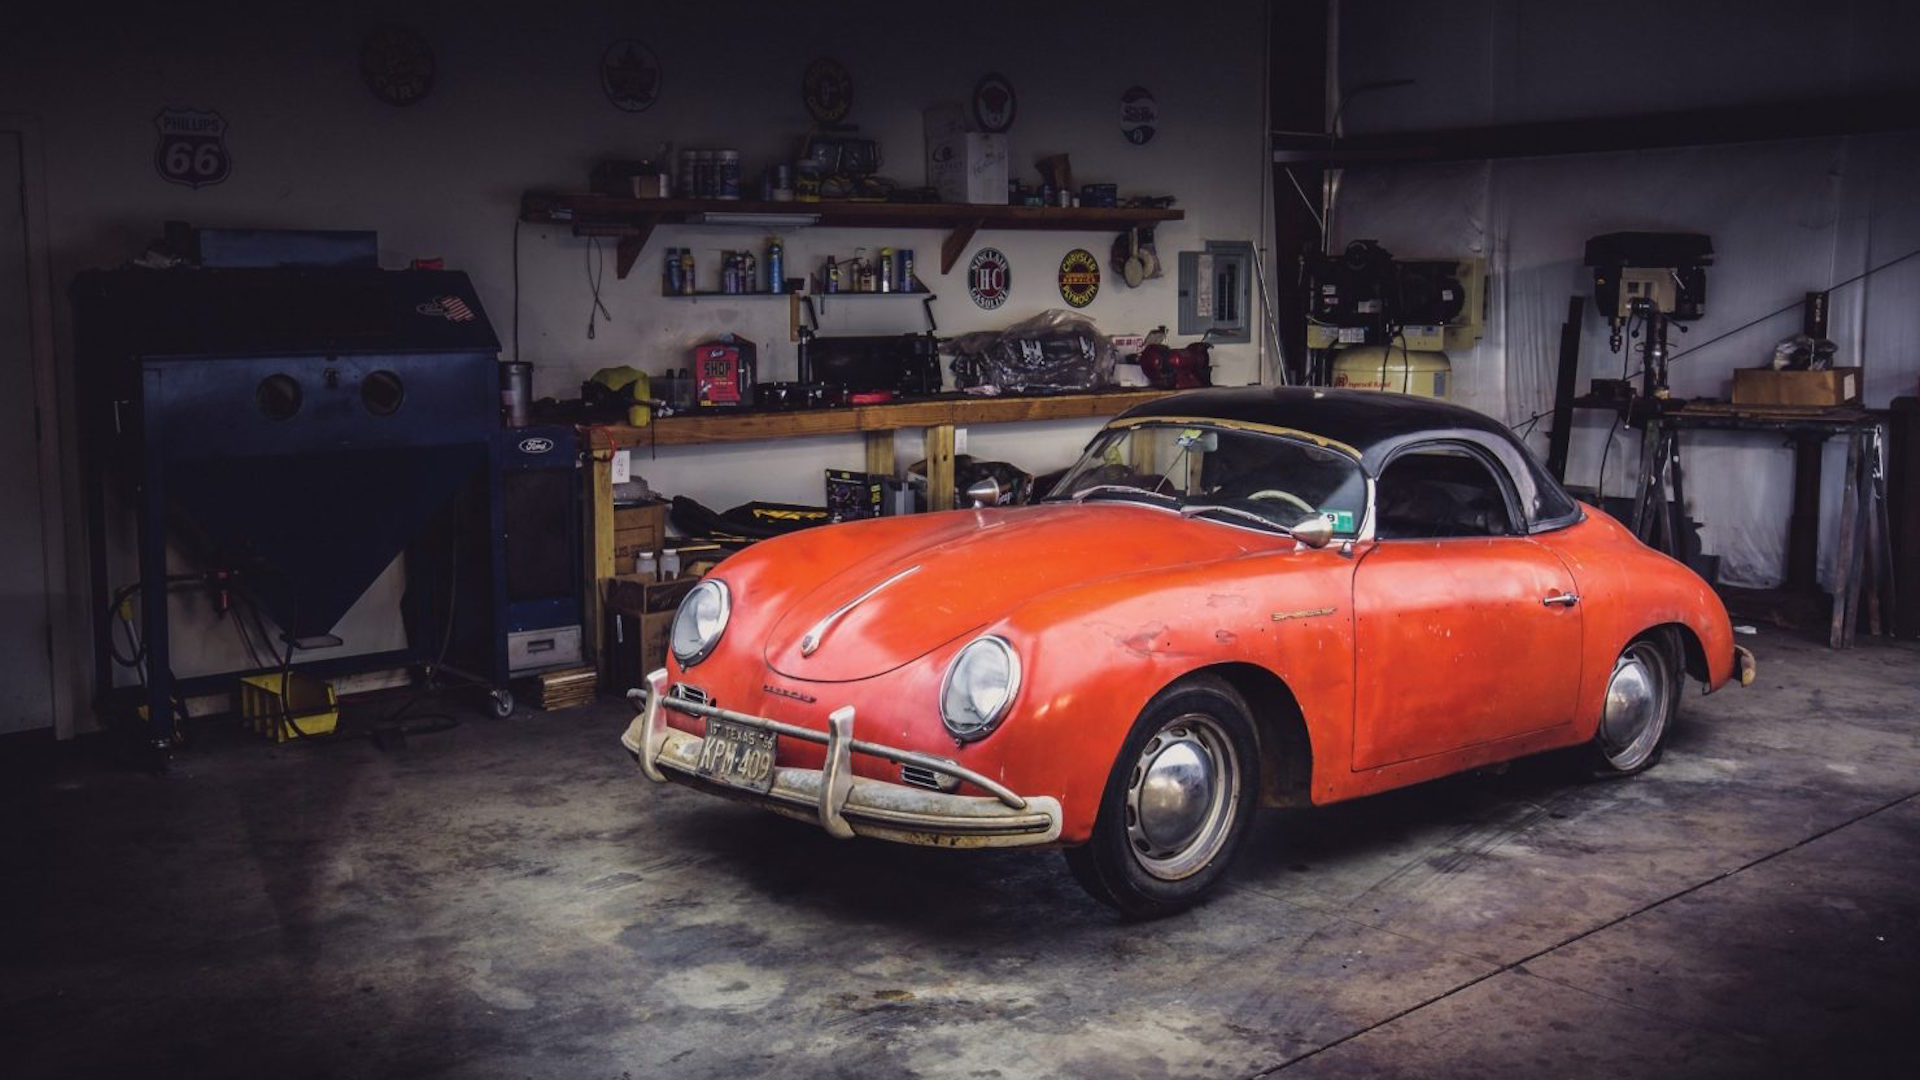 This Custom Air Cooled Porsche Barn Find Spent 40 Years